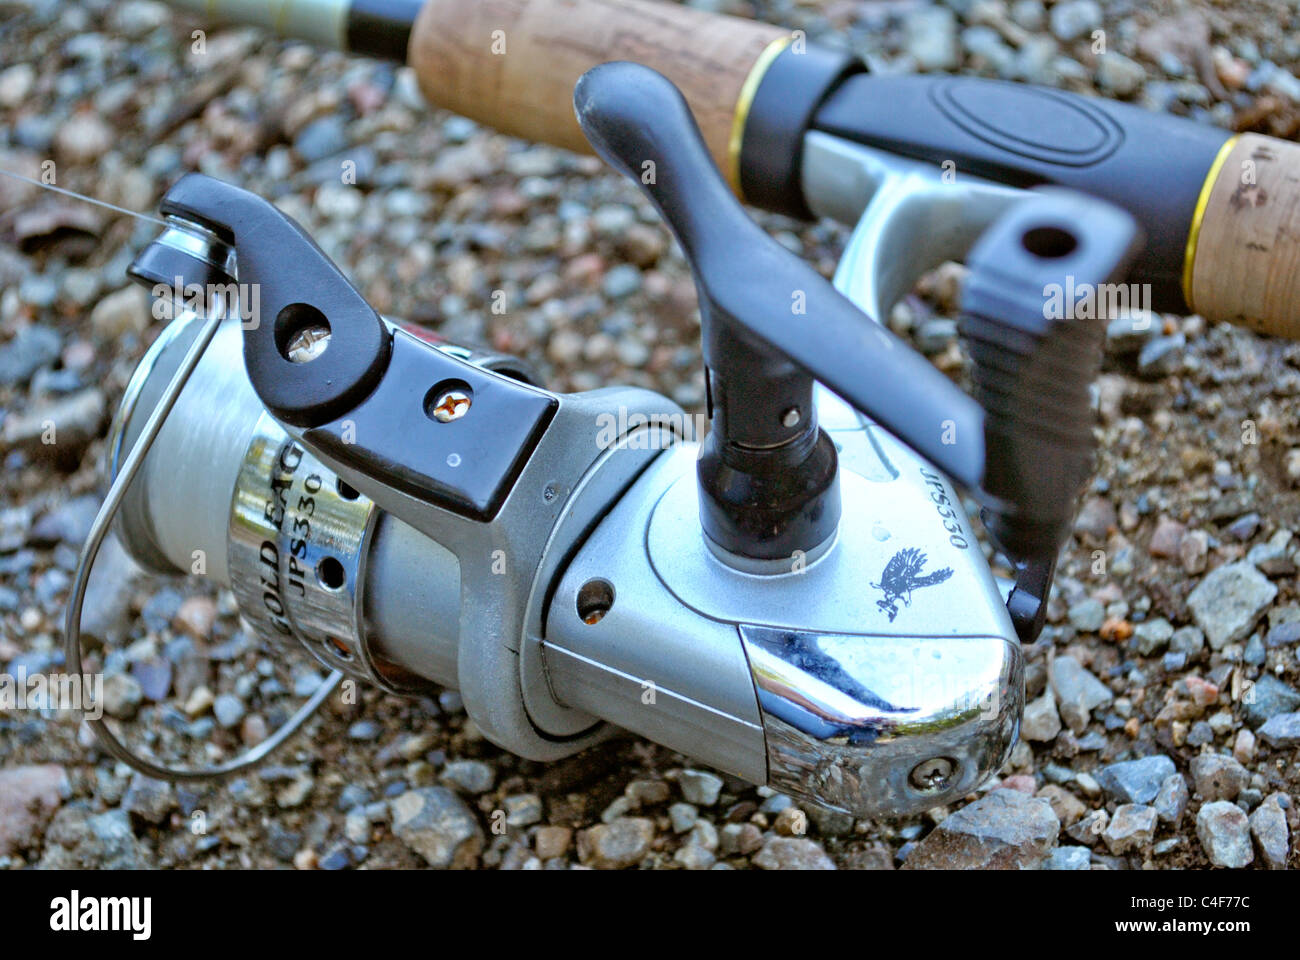 Close up of a reel of a fishing rod. - Stock Image